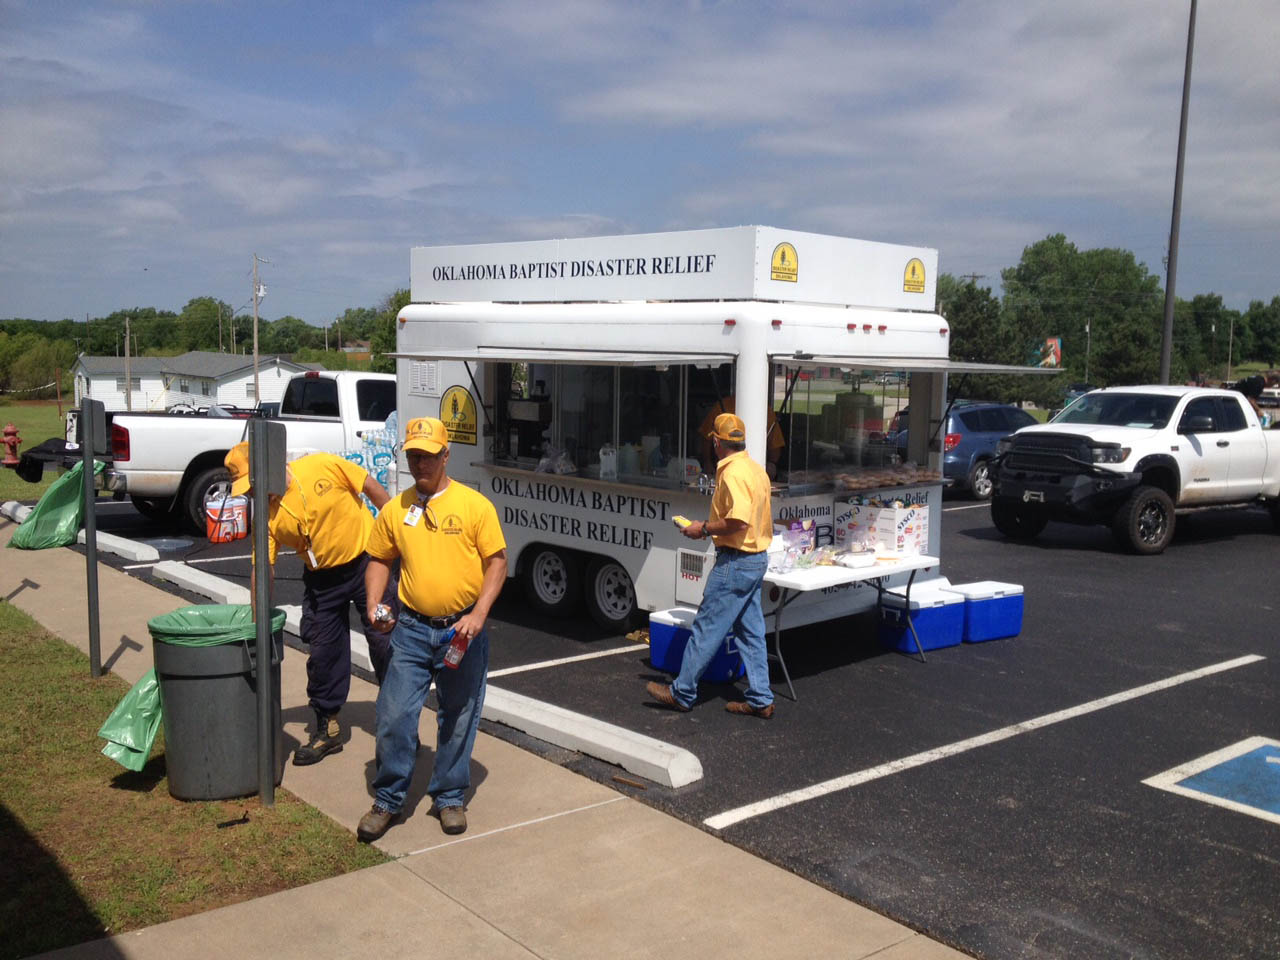 Oklahoma Baptist disaster relief volunteers serve meals on Thursday and Friday to victims and volunteer workers, at Snow Hill Baptist Church near Tuttle. (Photo: Brad Biddy)